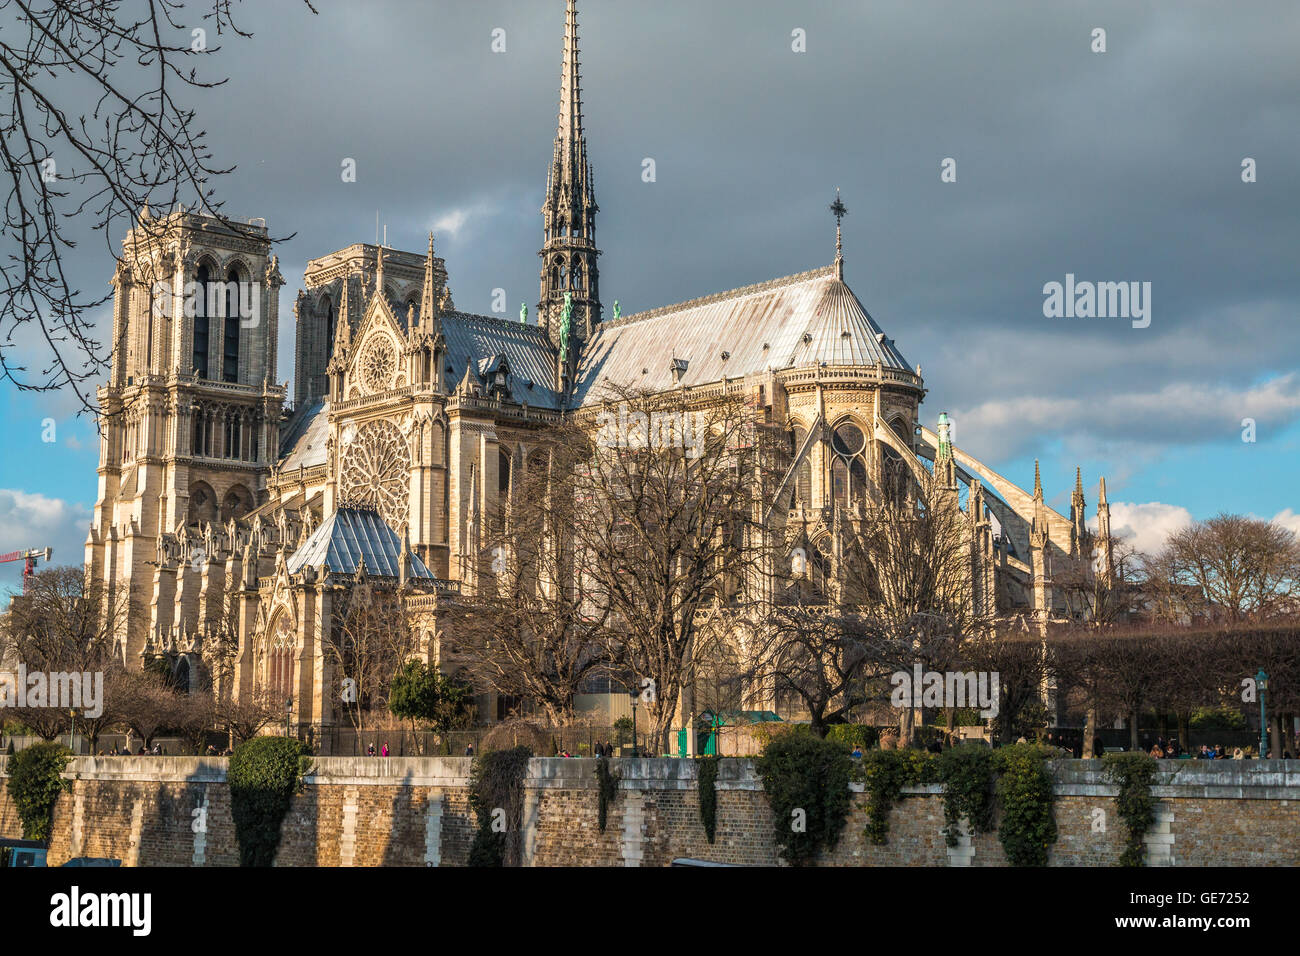 Notre dame Cathedral of Paris - Stock Image